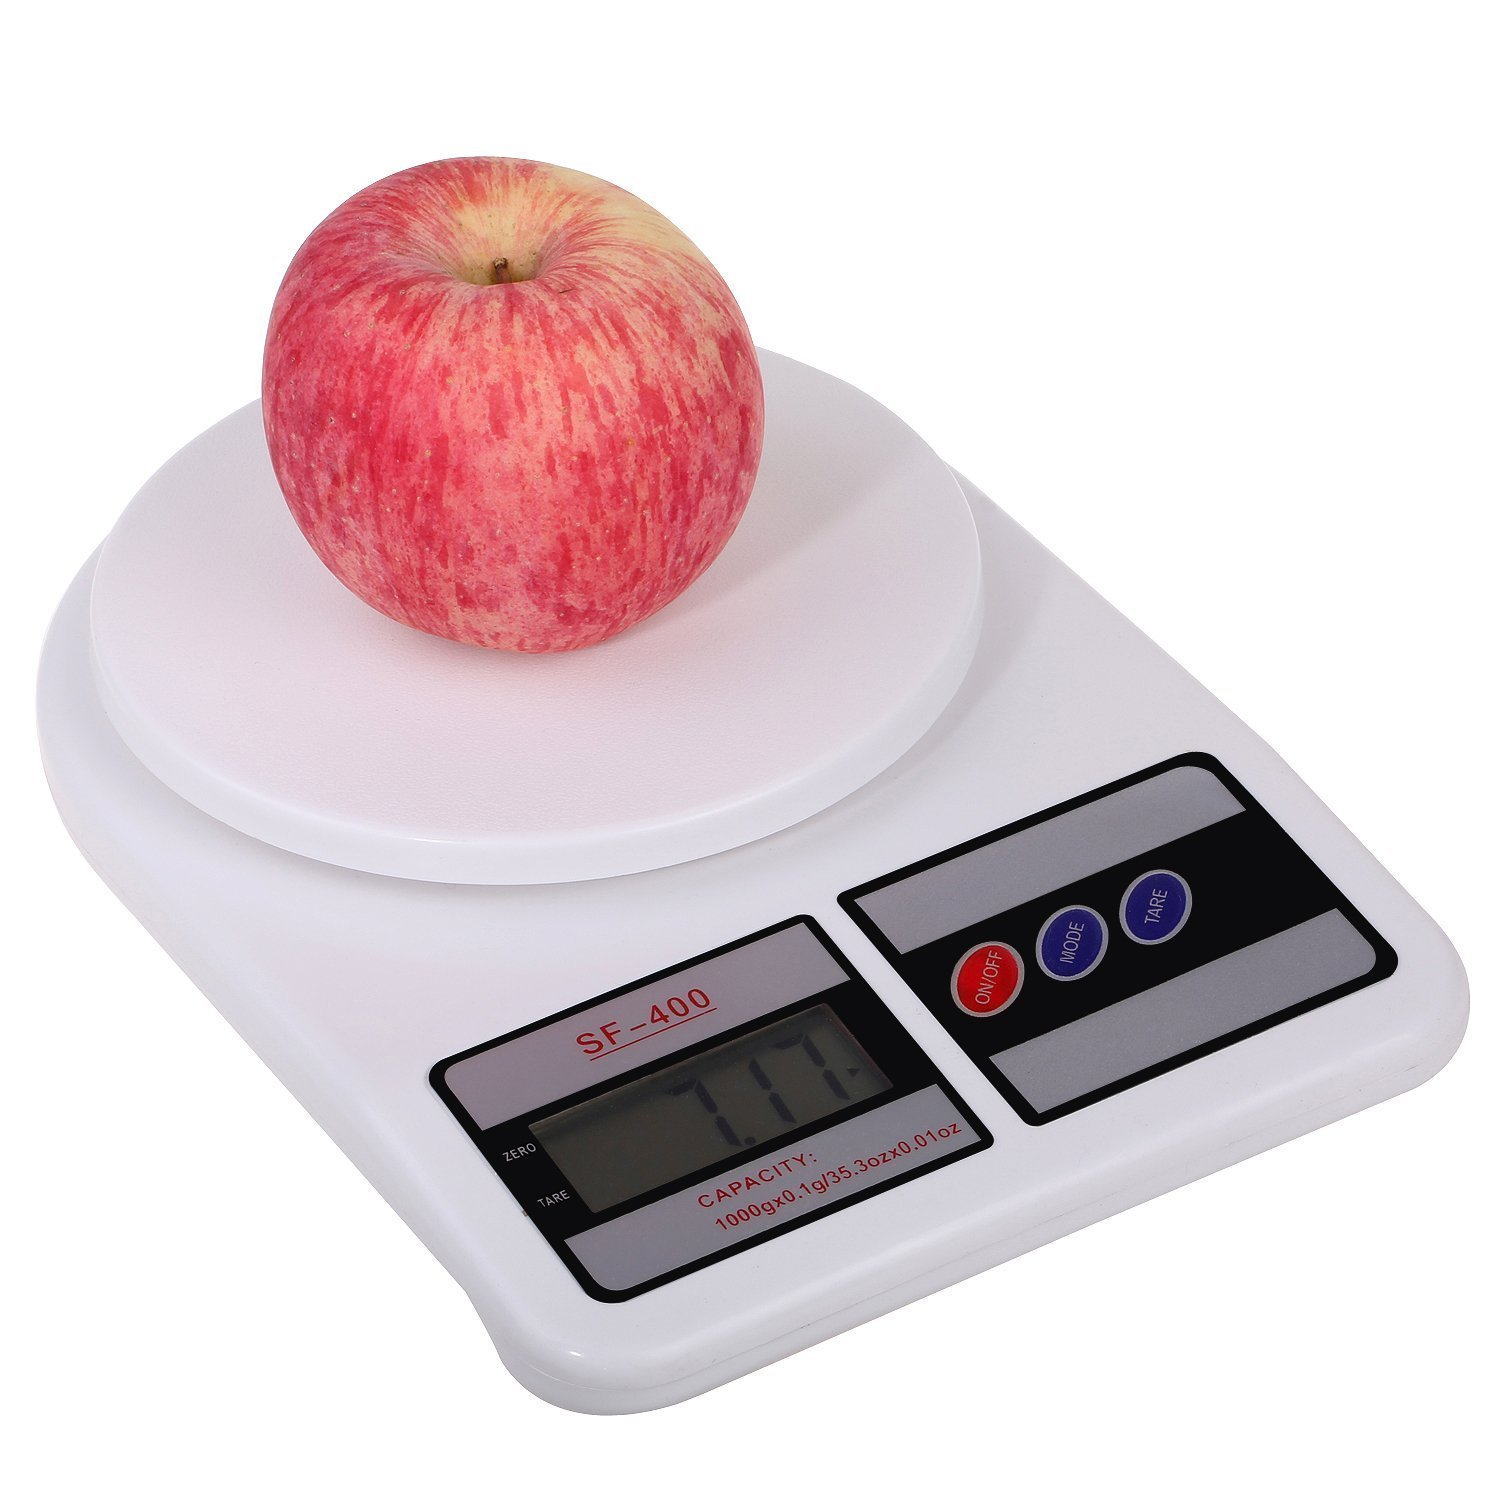 SF-400 Digital Kitchen Weighing Scale 7kg